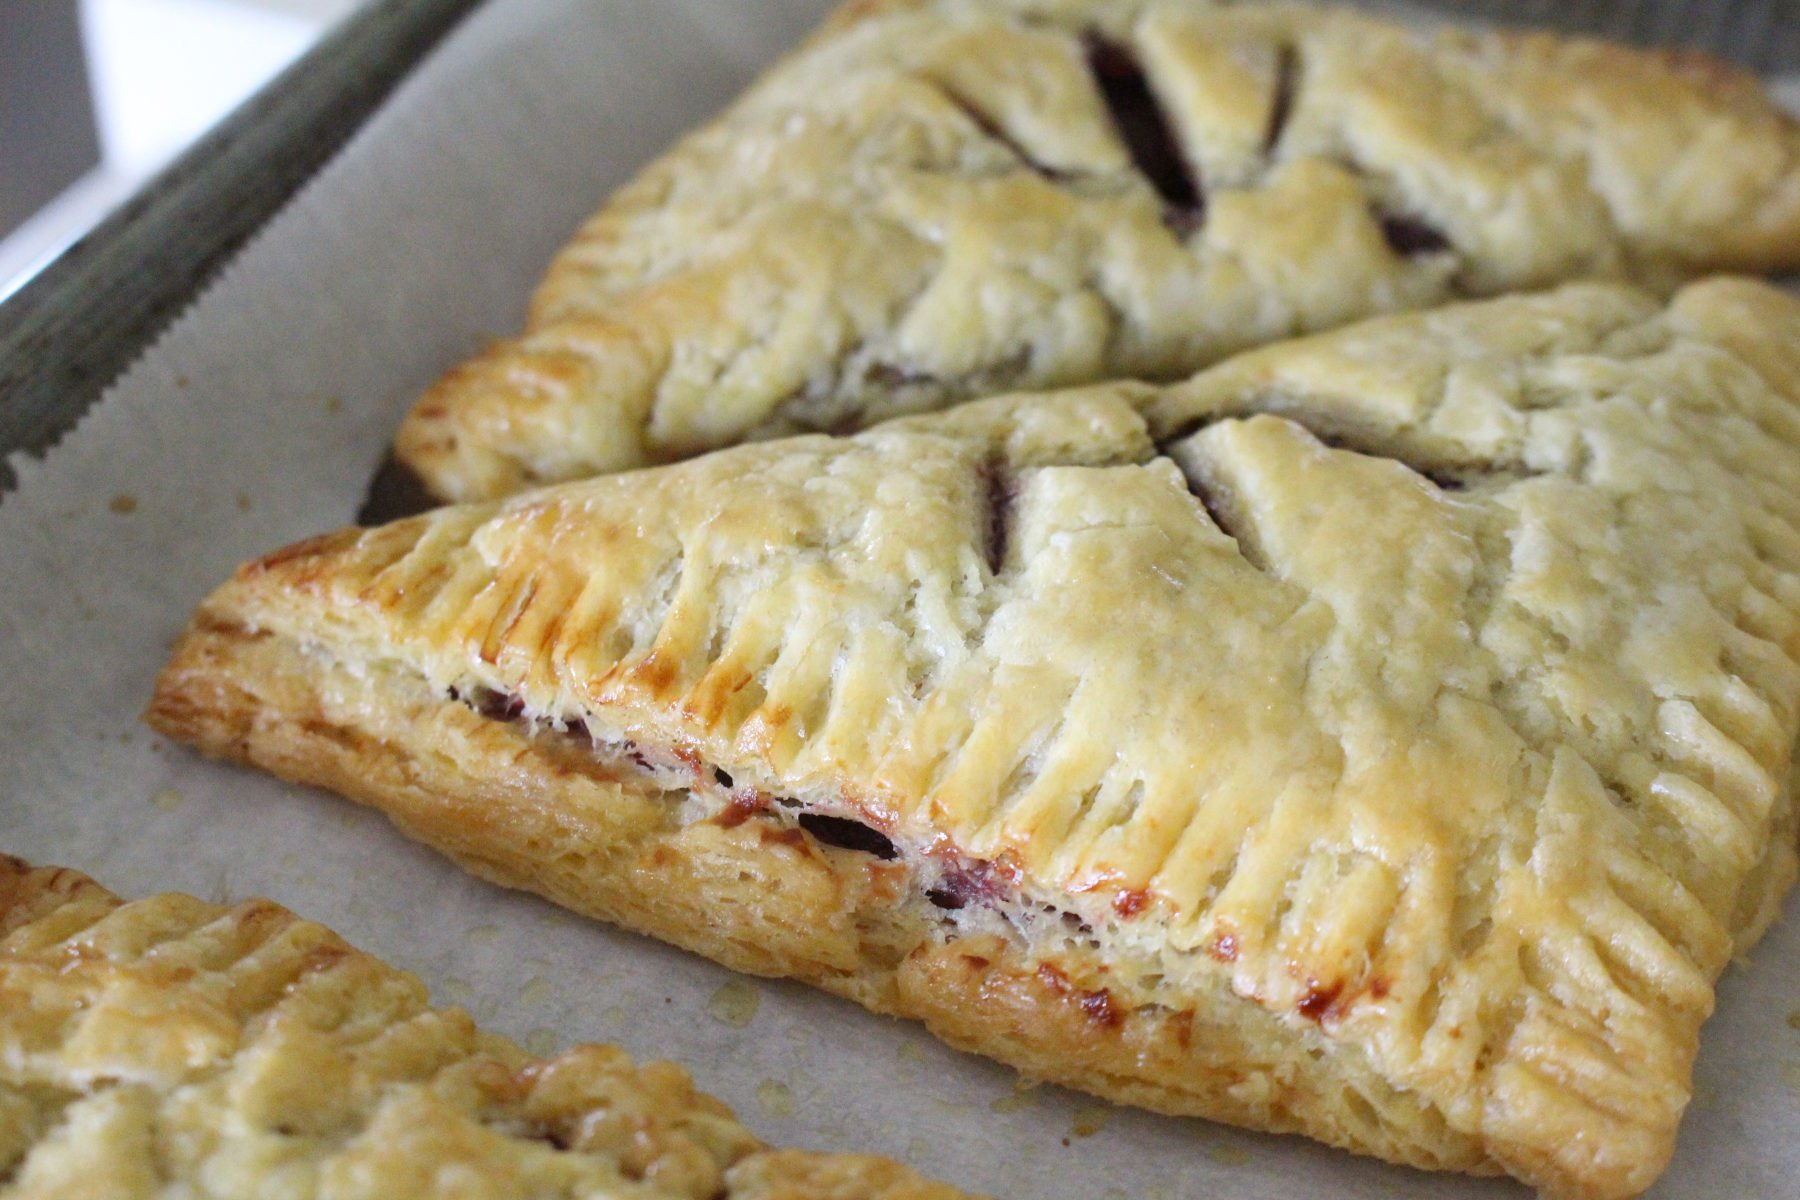 Homemade einkorn puff pastry turned into cherry turnovers